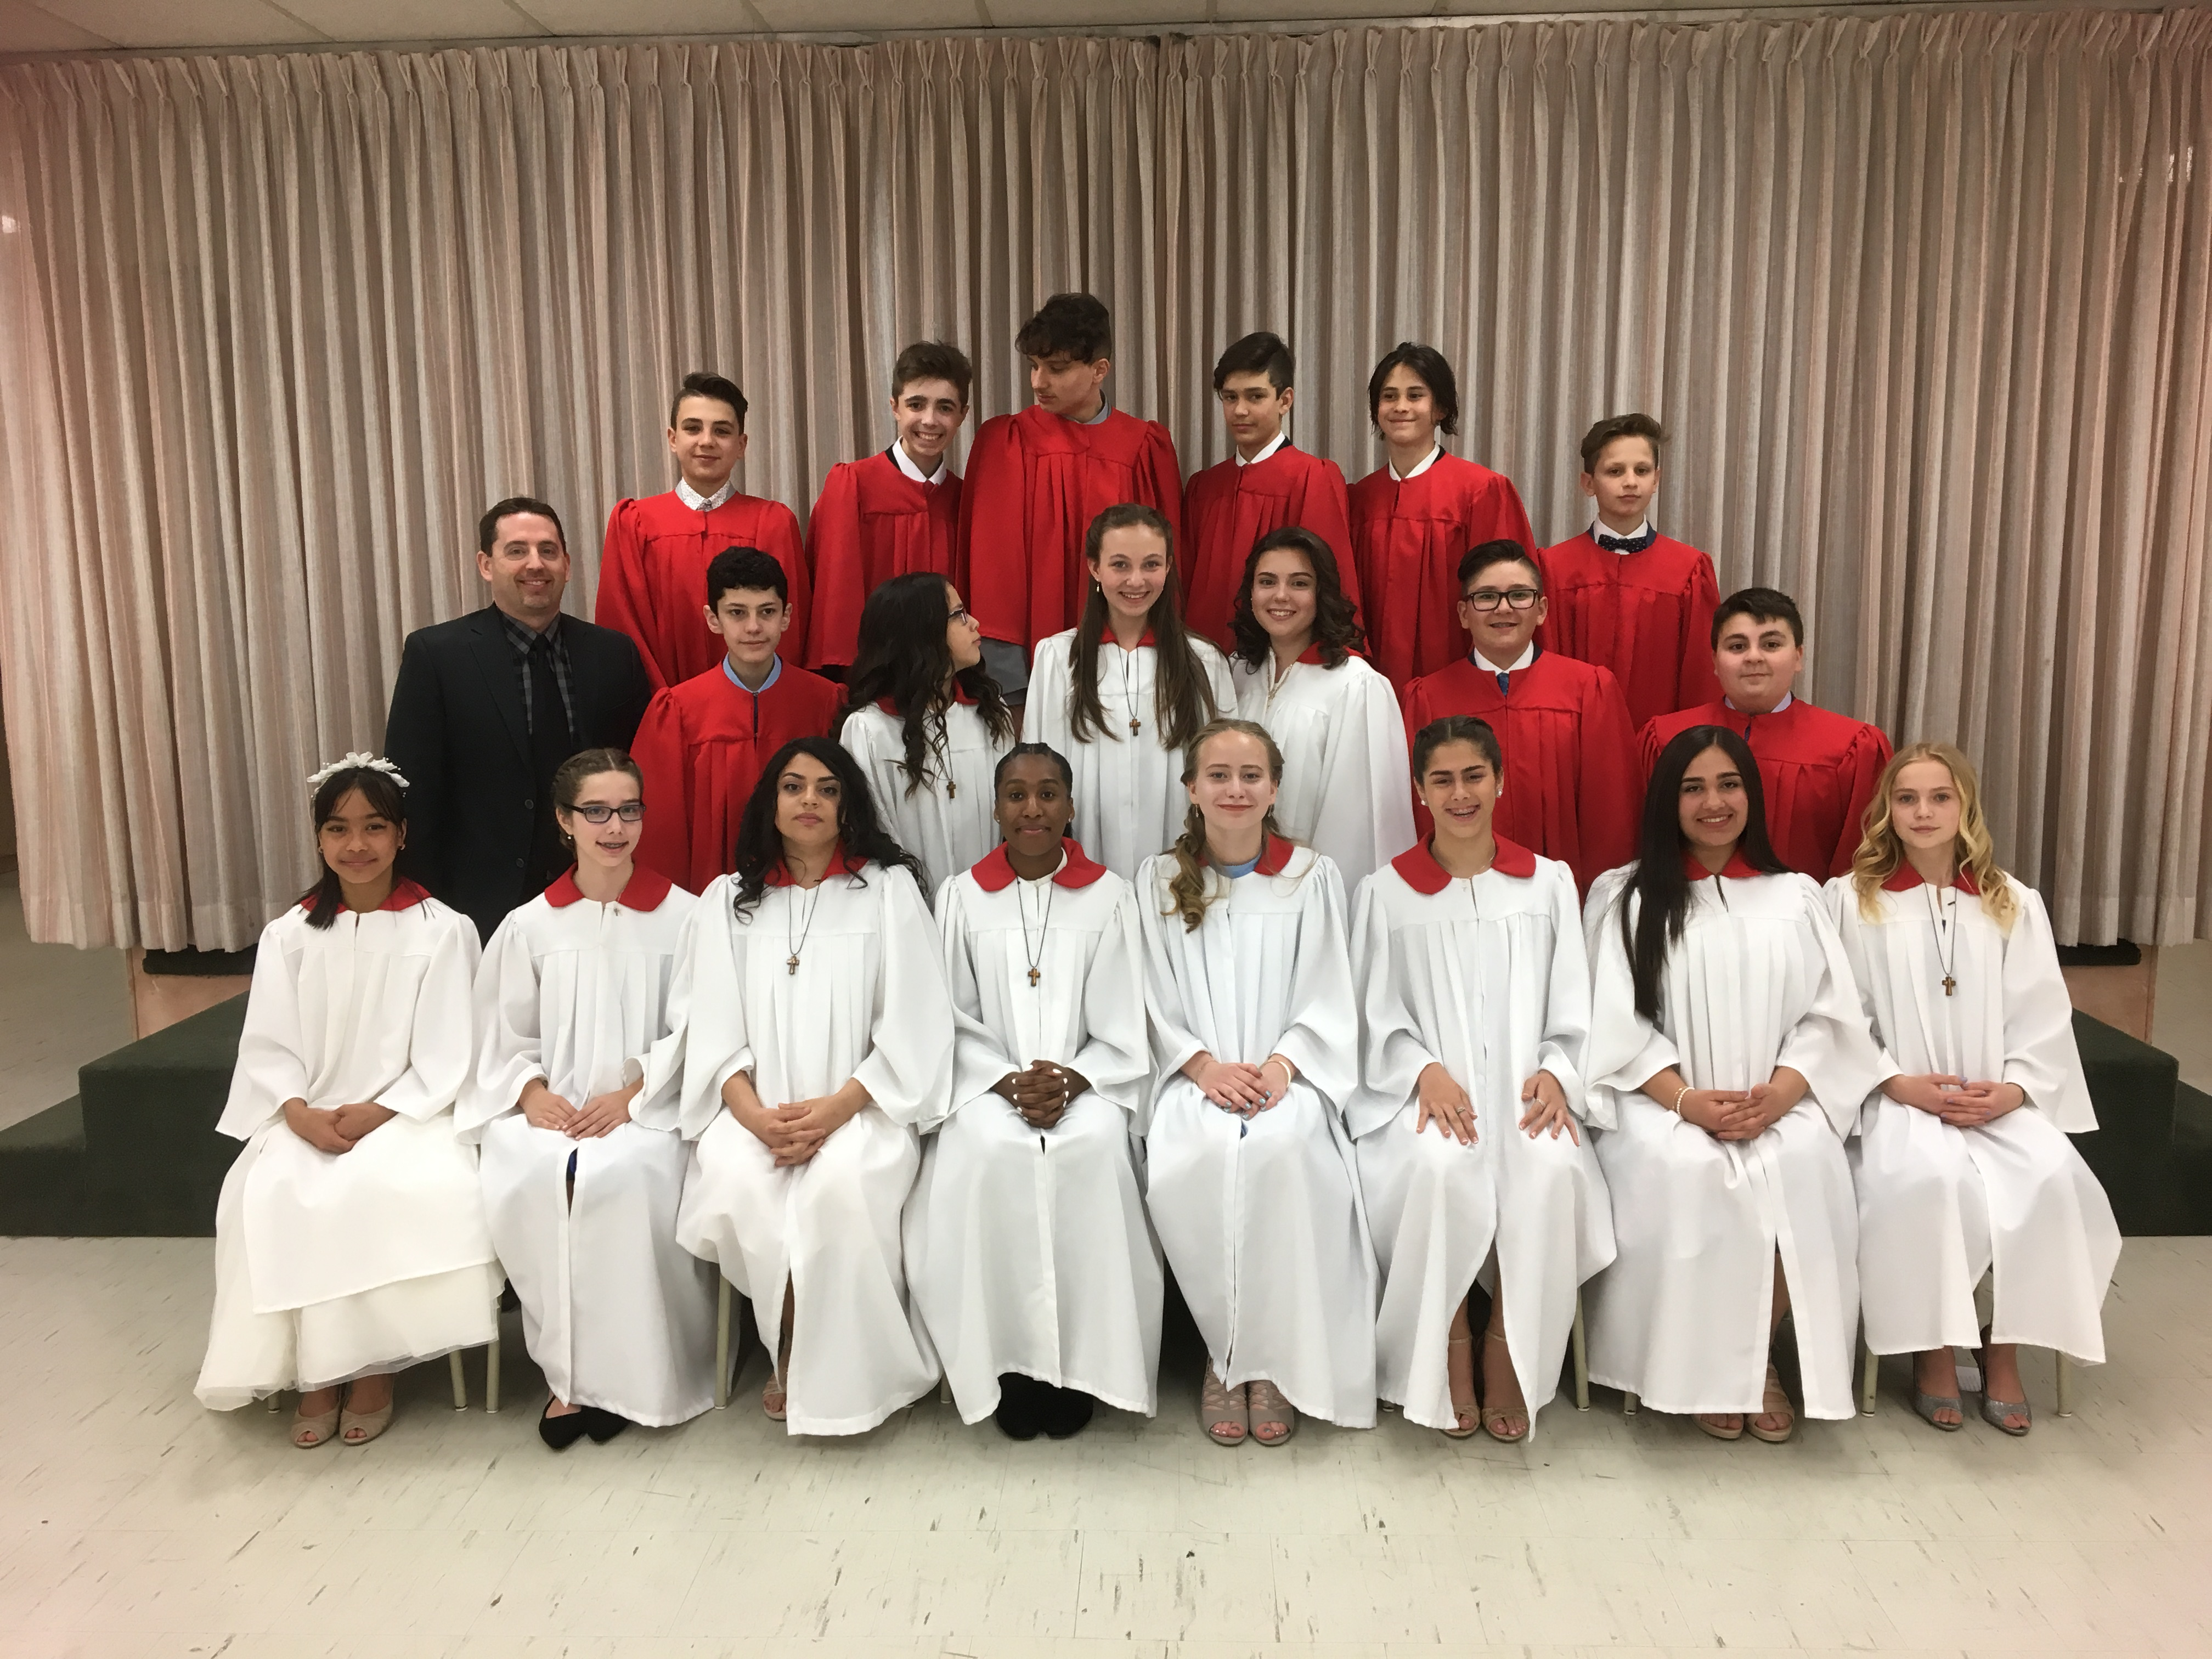 Confirmation Class 2018 at Mary Fix Catholic School (May 8, 2018)